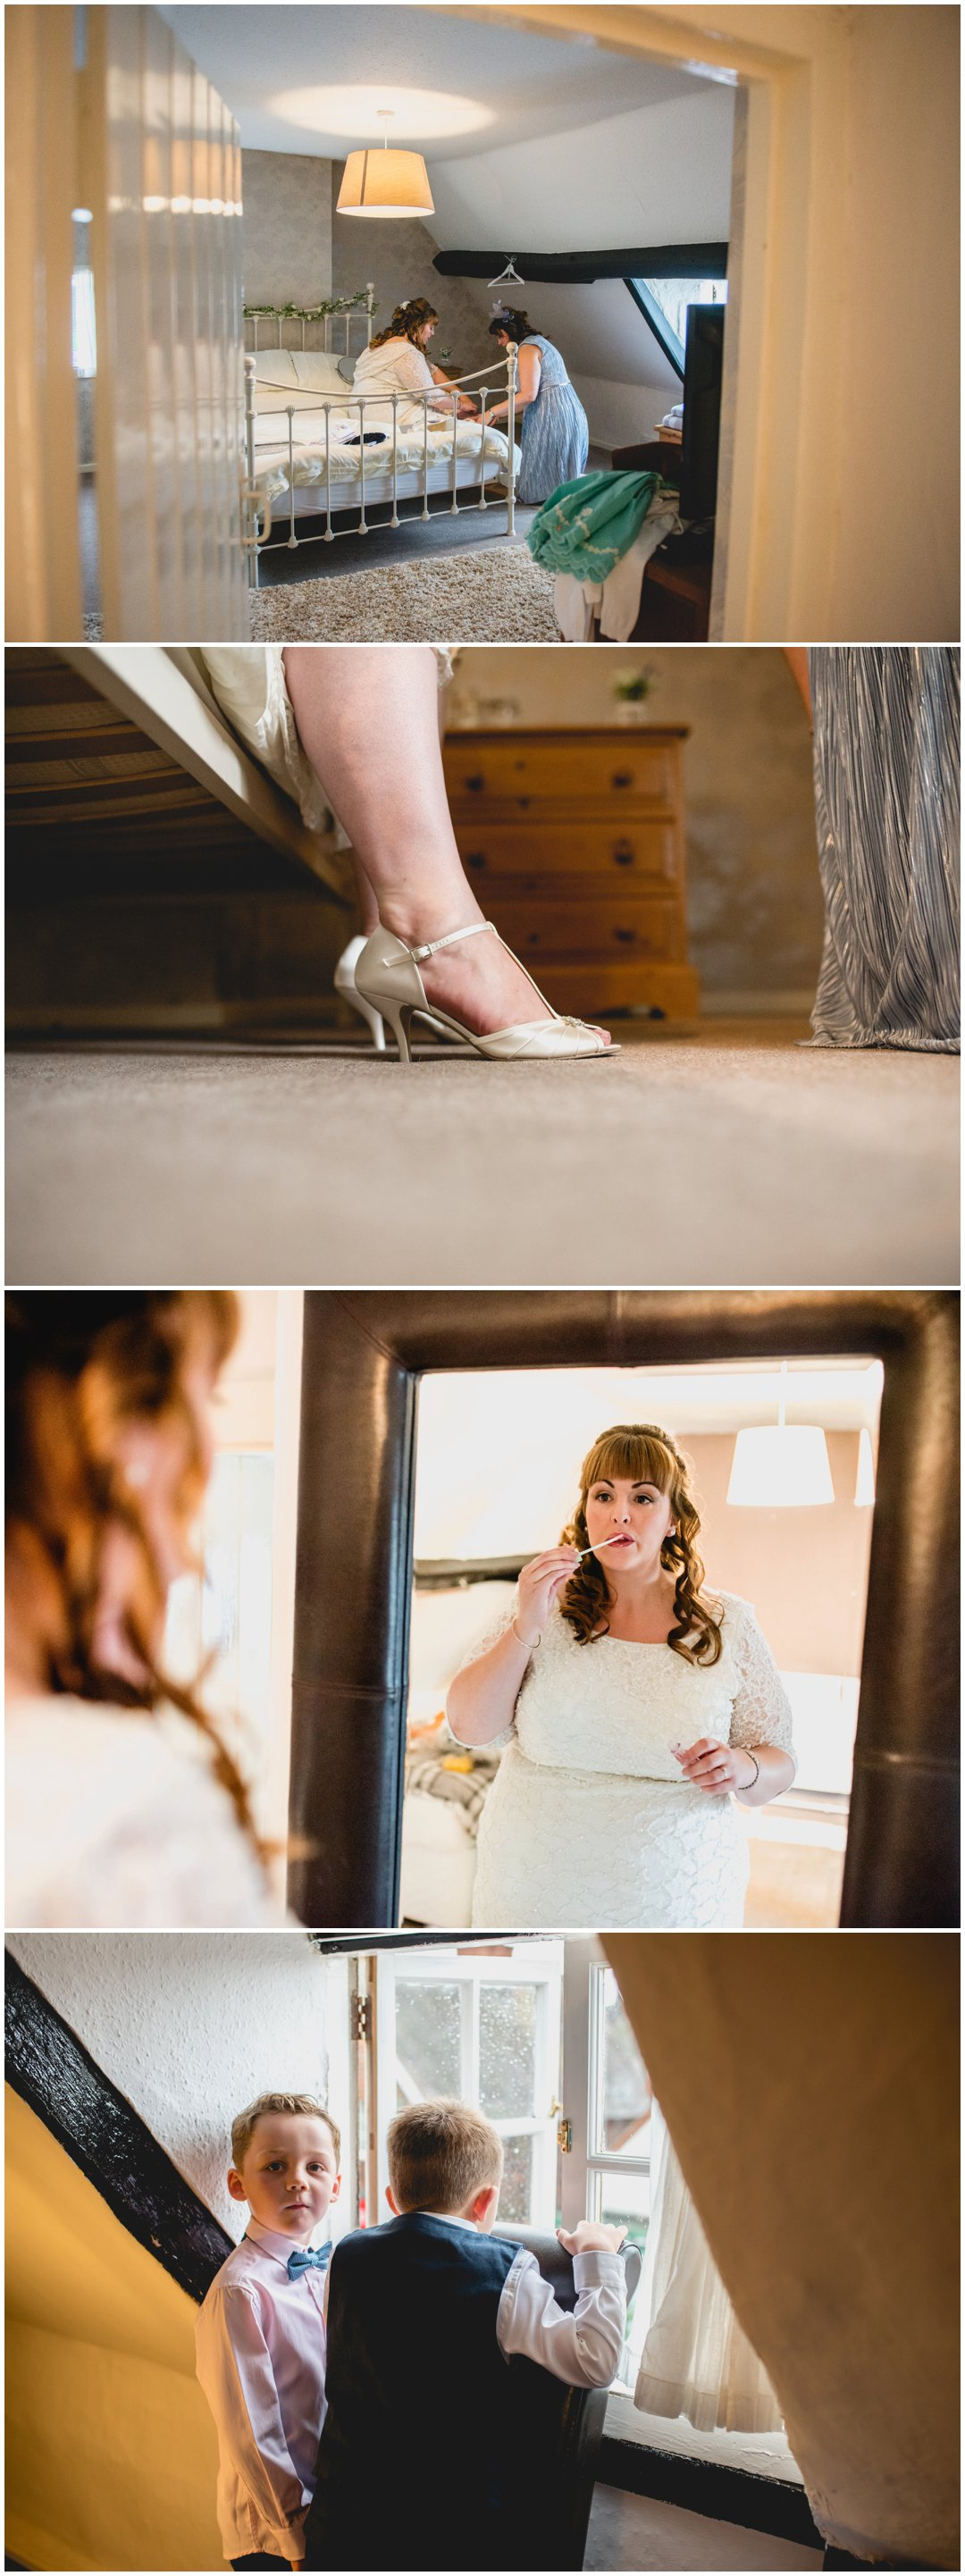 Sam and Lee's Country Pub Wedding at The Bull Inn in Clifton Upon Dunsmore, Rugby with photos by Lisa Carpenter Photography, West Midlands and Birmingham based wedding photographer specialising in alternative, cool, quirky weddings